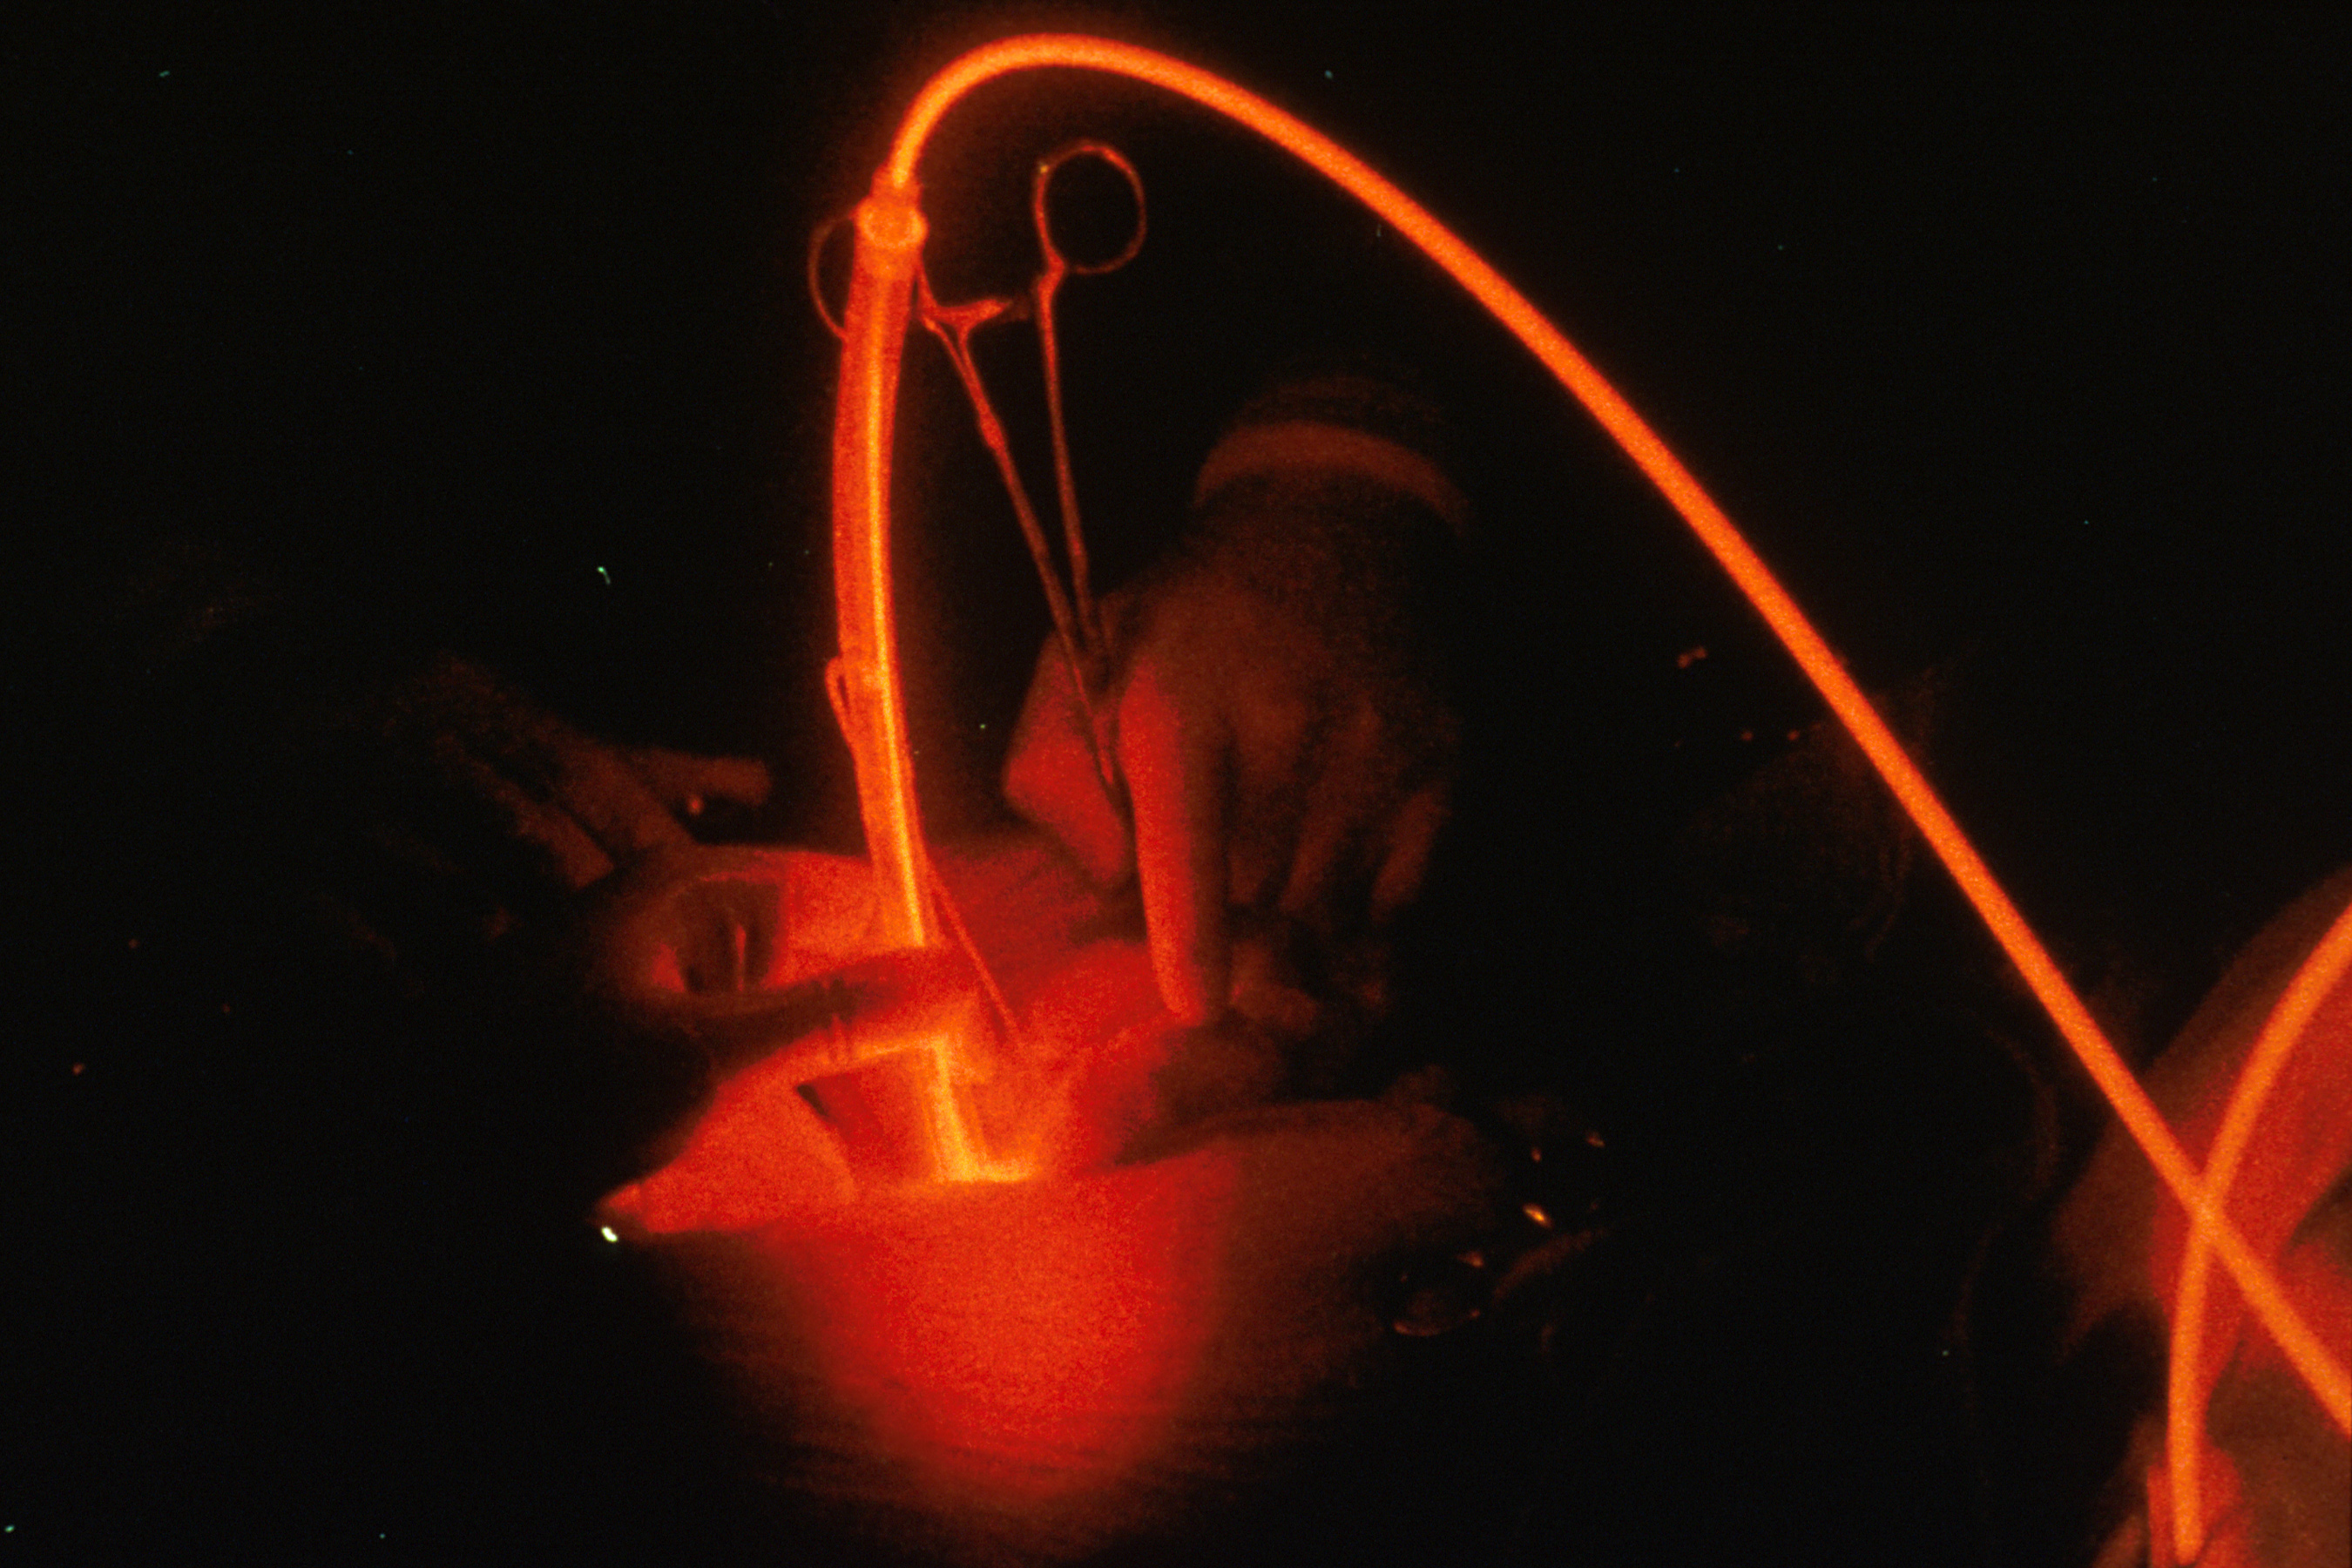 File:Photodynamic therapy (red).jpg - Wikimedia Commons